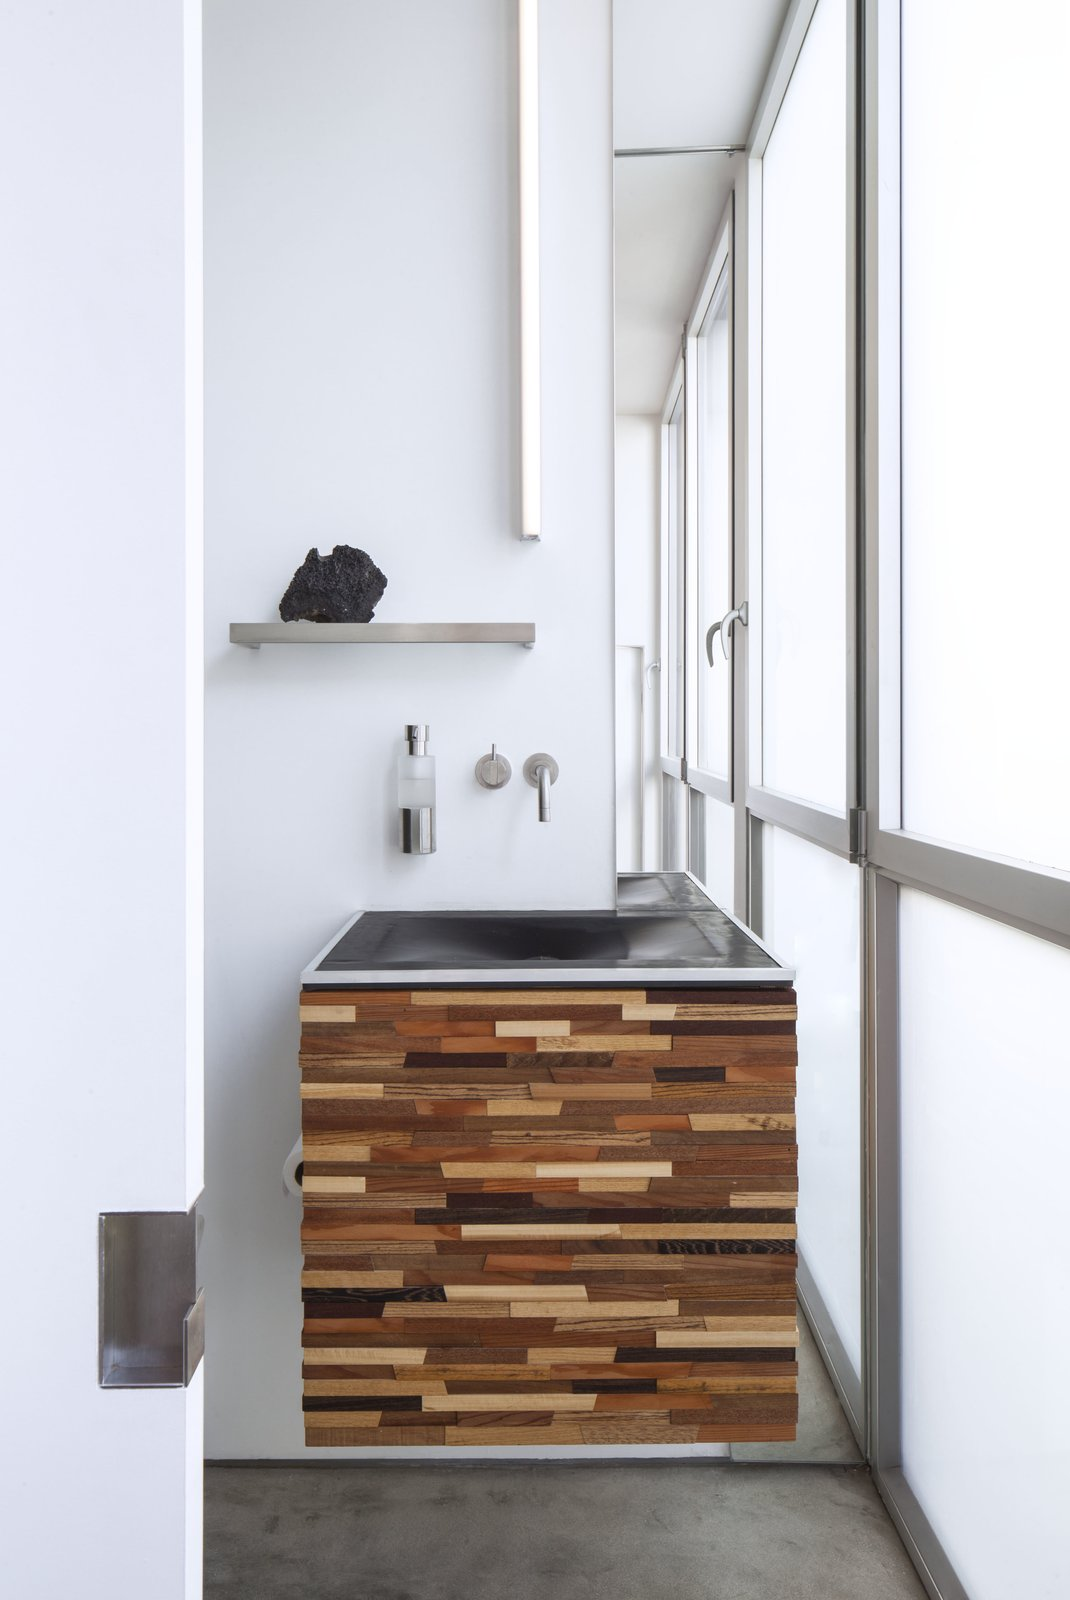 Dawnsknoll bathroom with recycled rubber sink